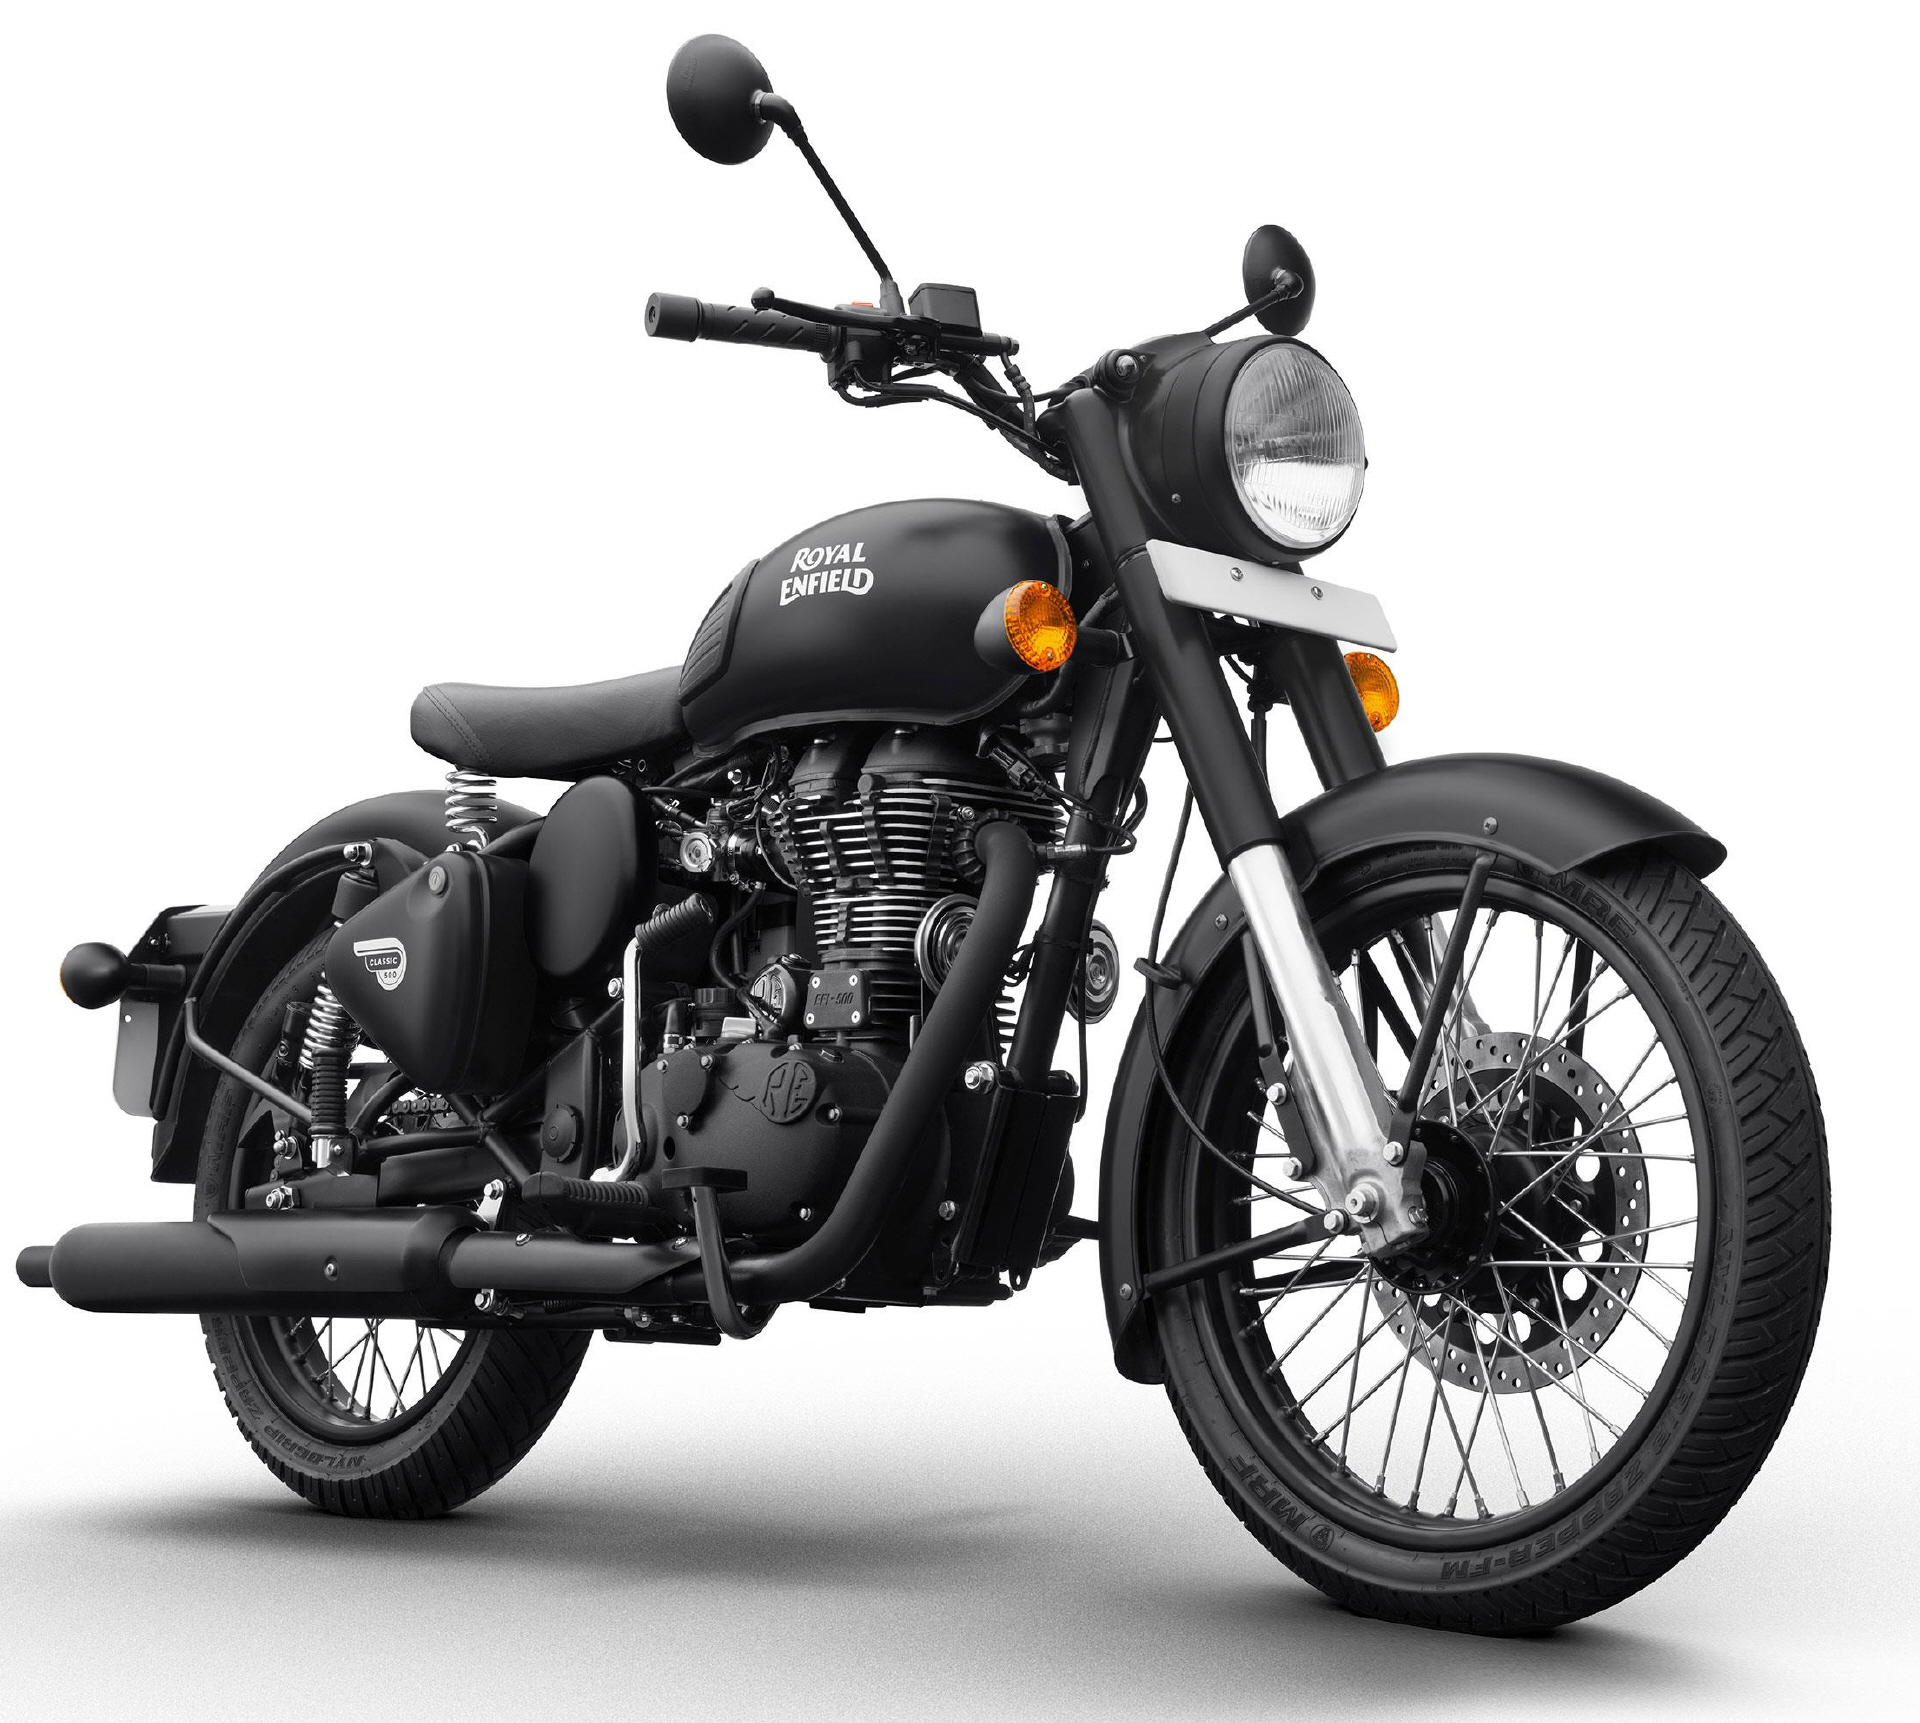 royalenfield_classic500_stealthblack_02jpg